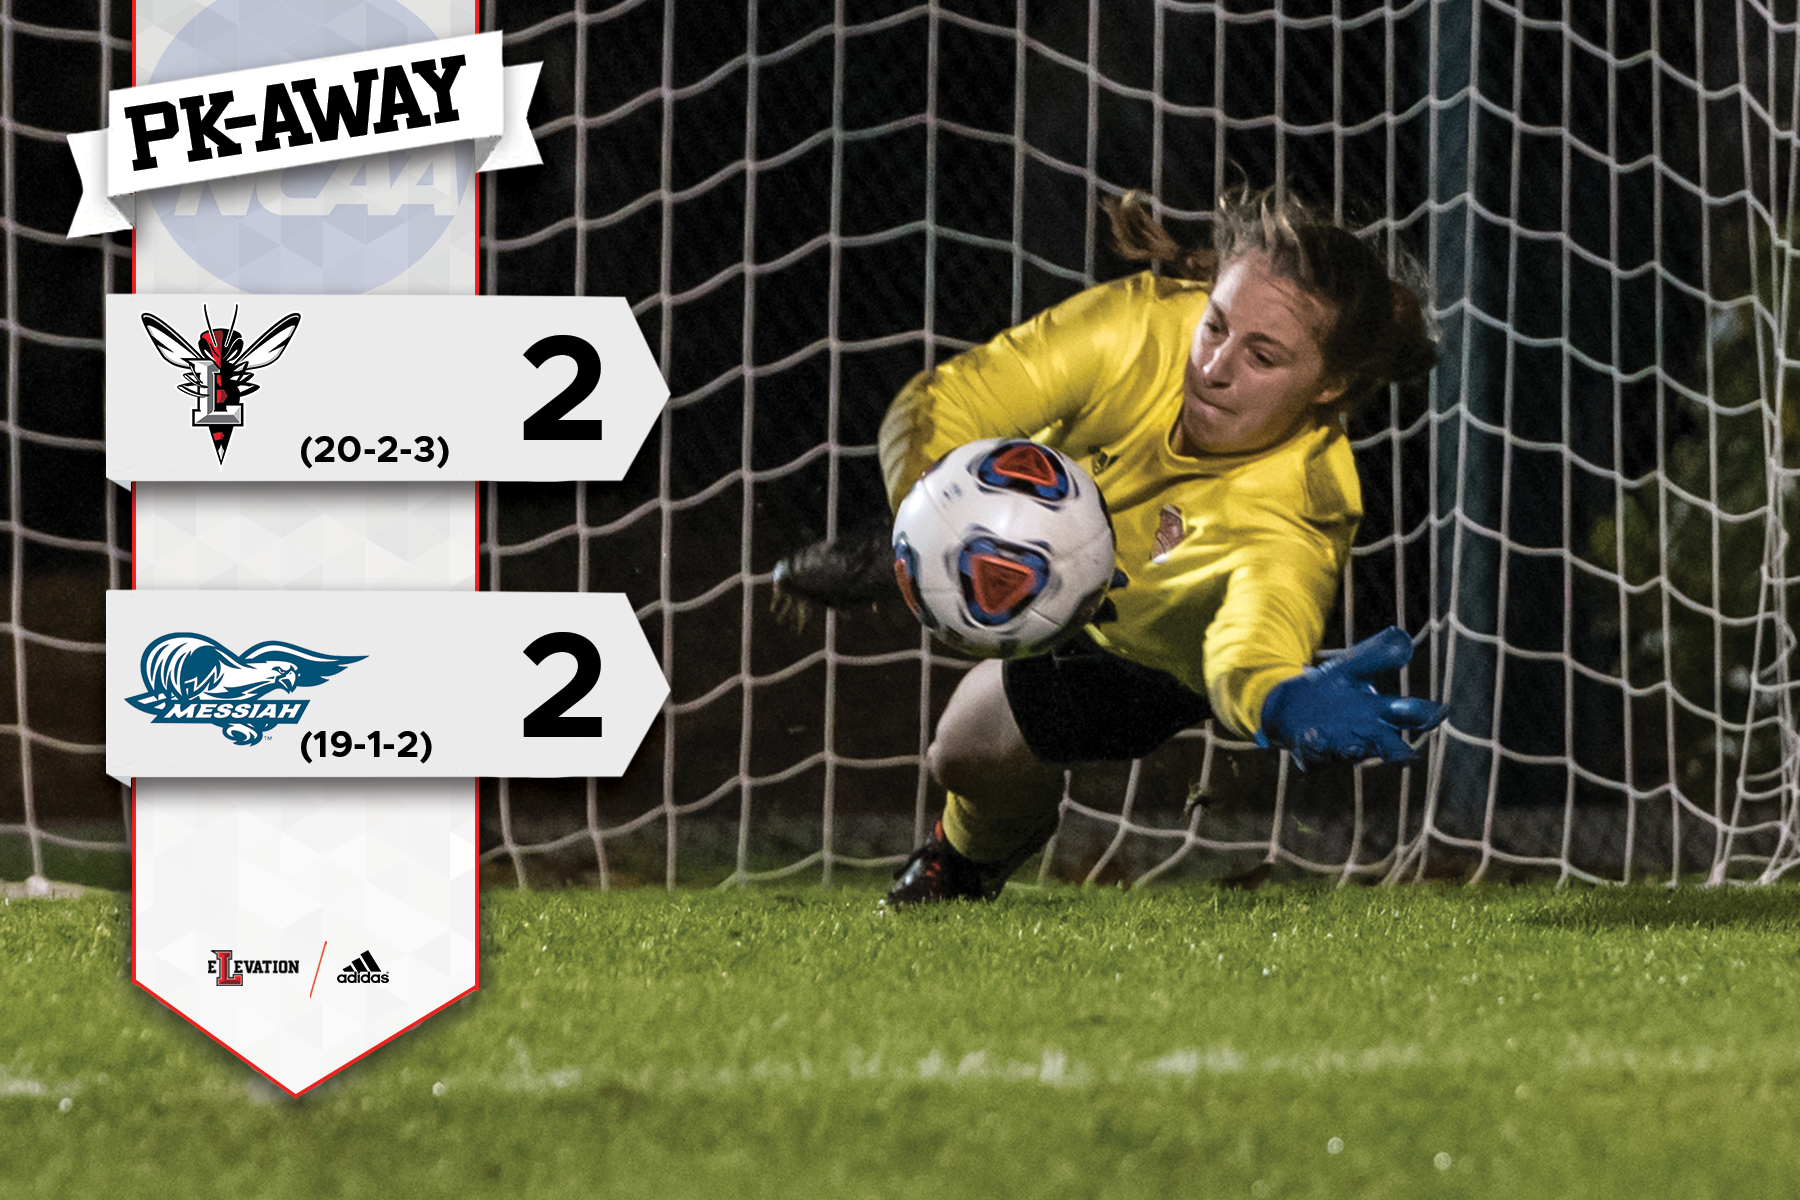 Delia LoSapio dives to make a save. Graphic on left showing 2-2 final score with team logos.